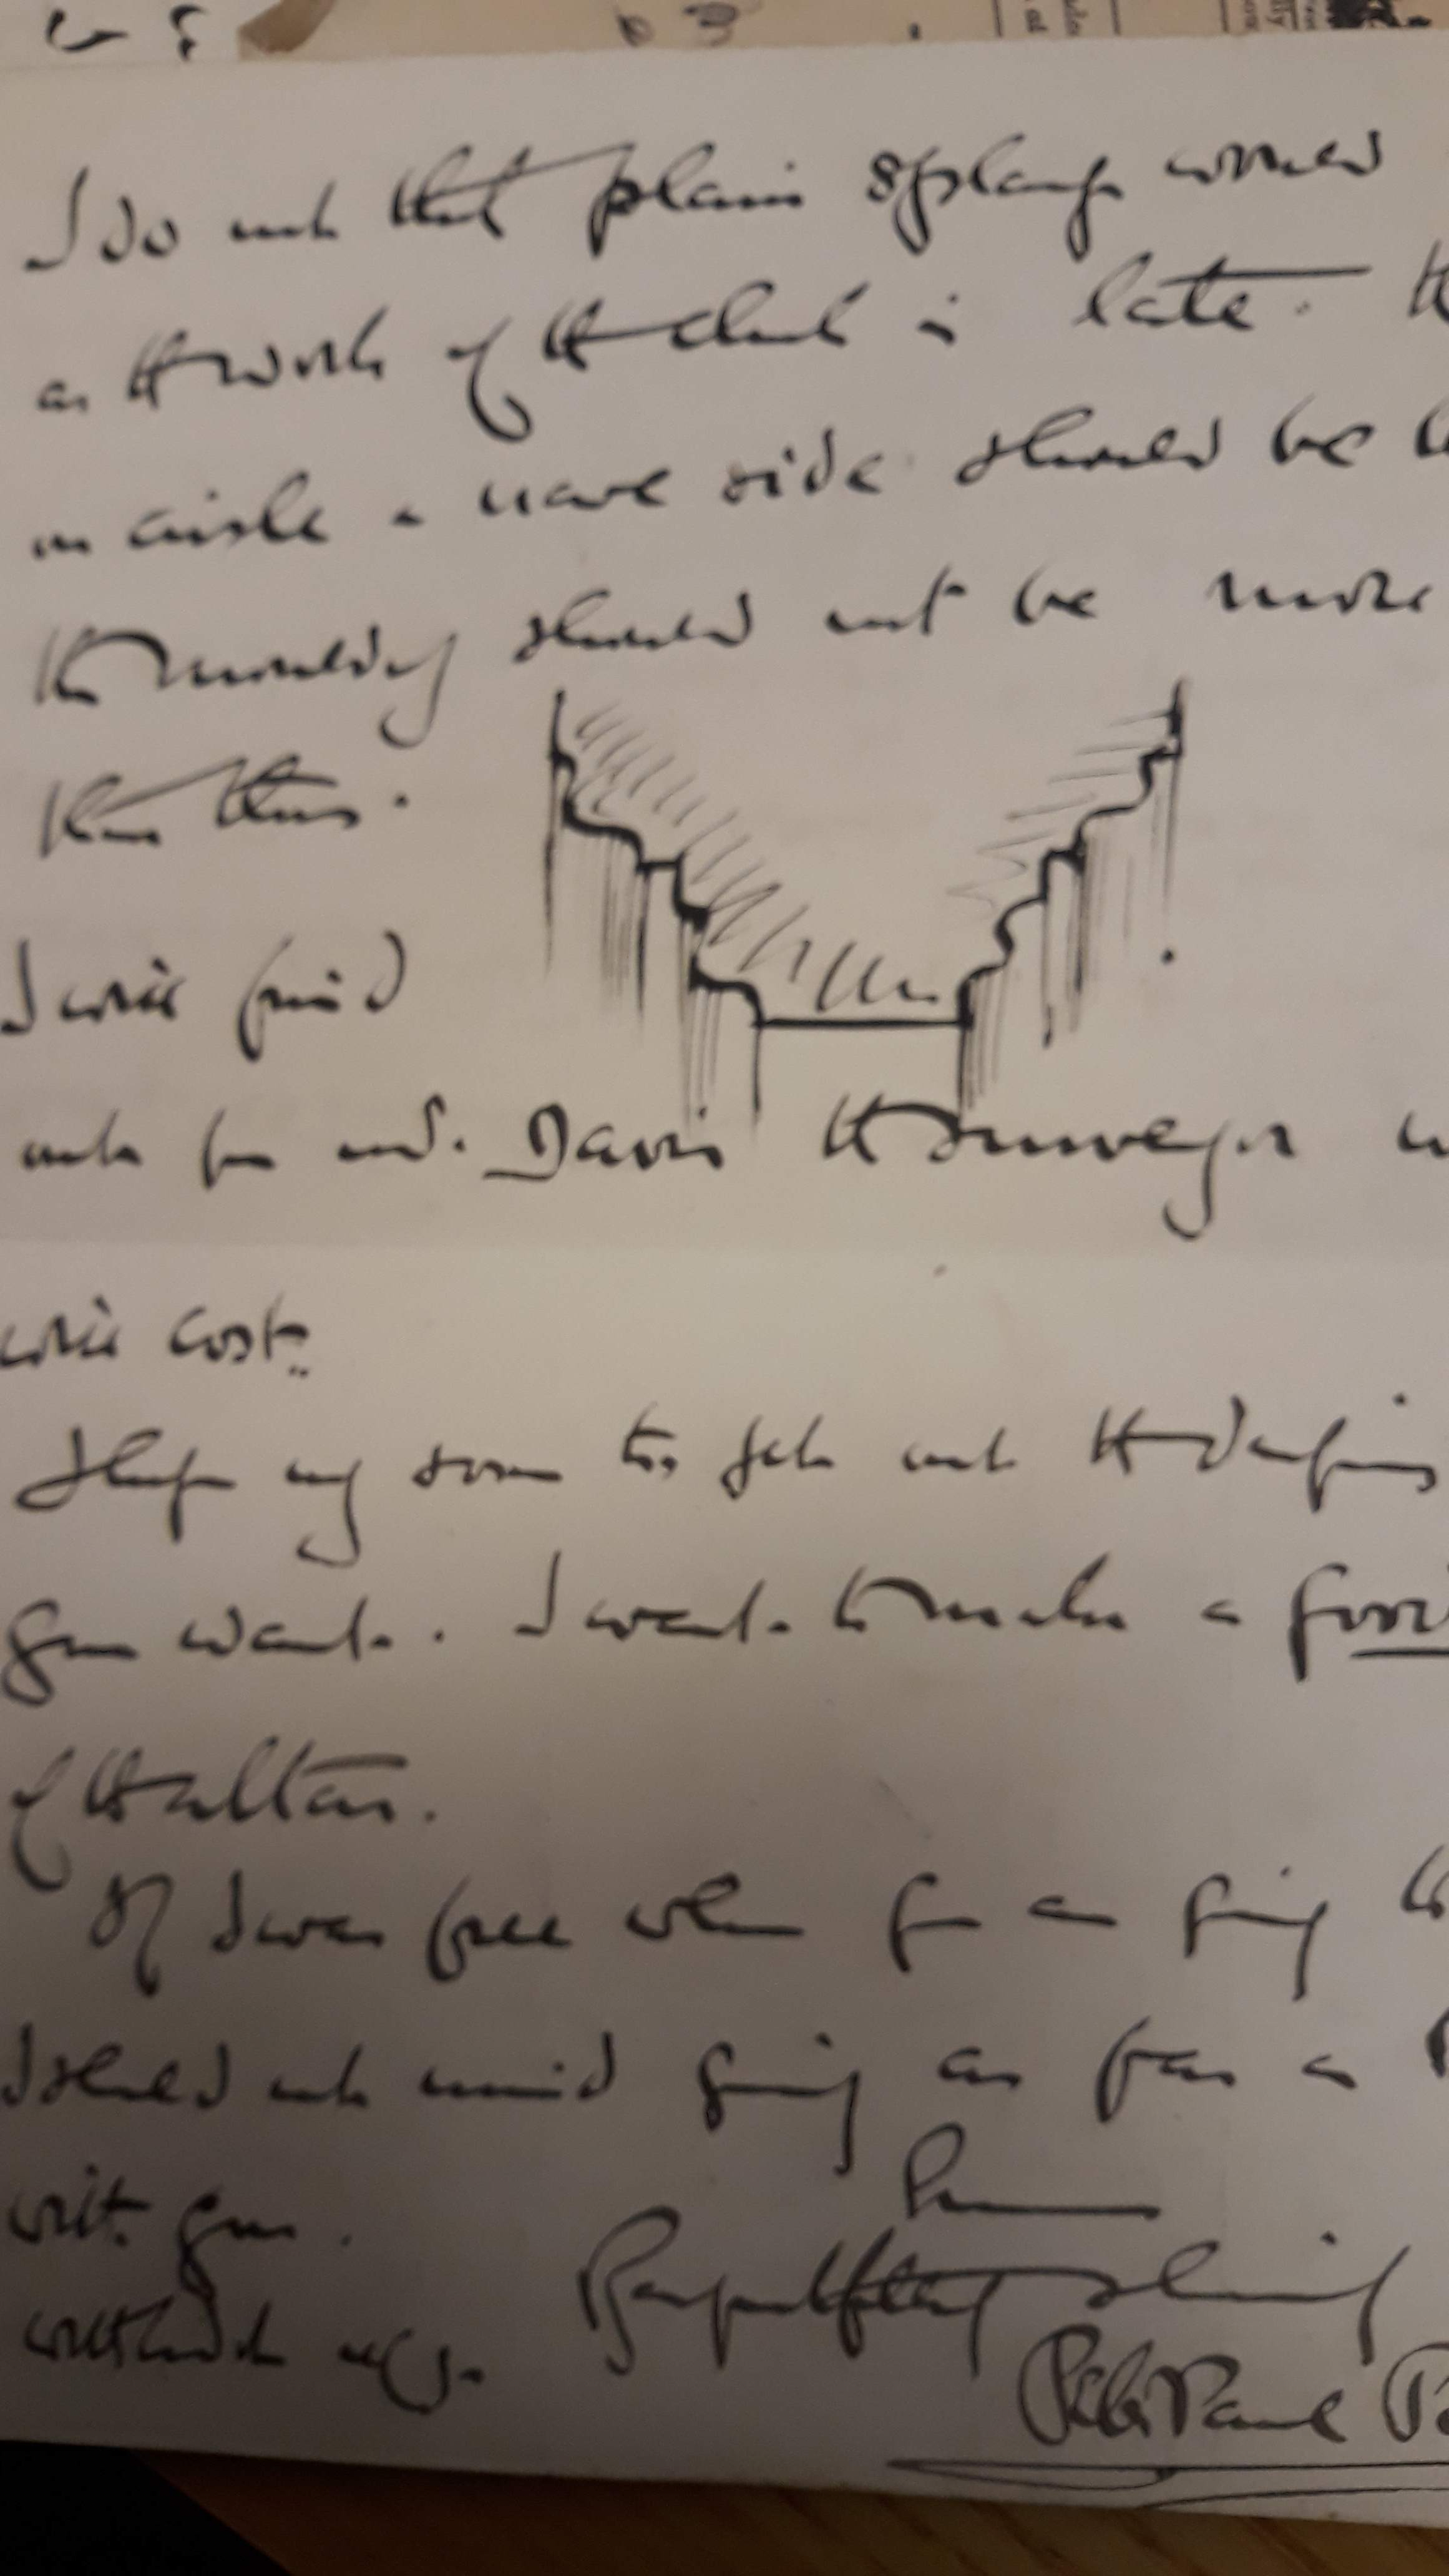 One of Peter Paul's letters with sketch